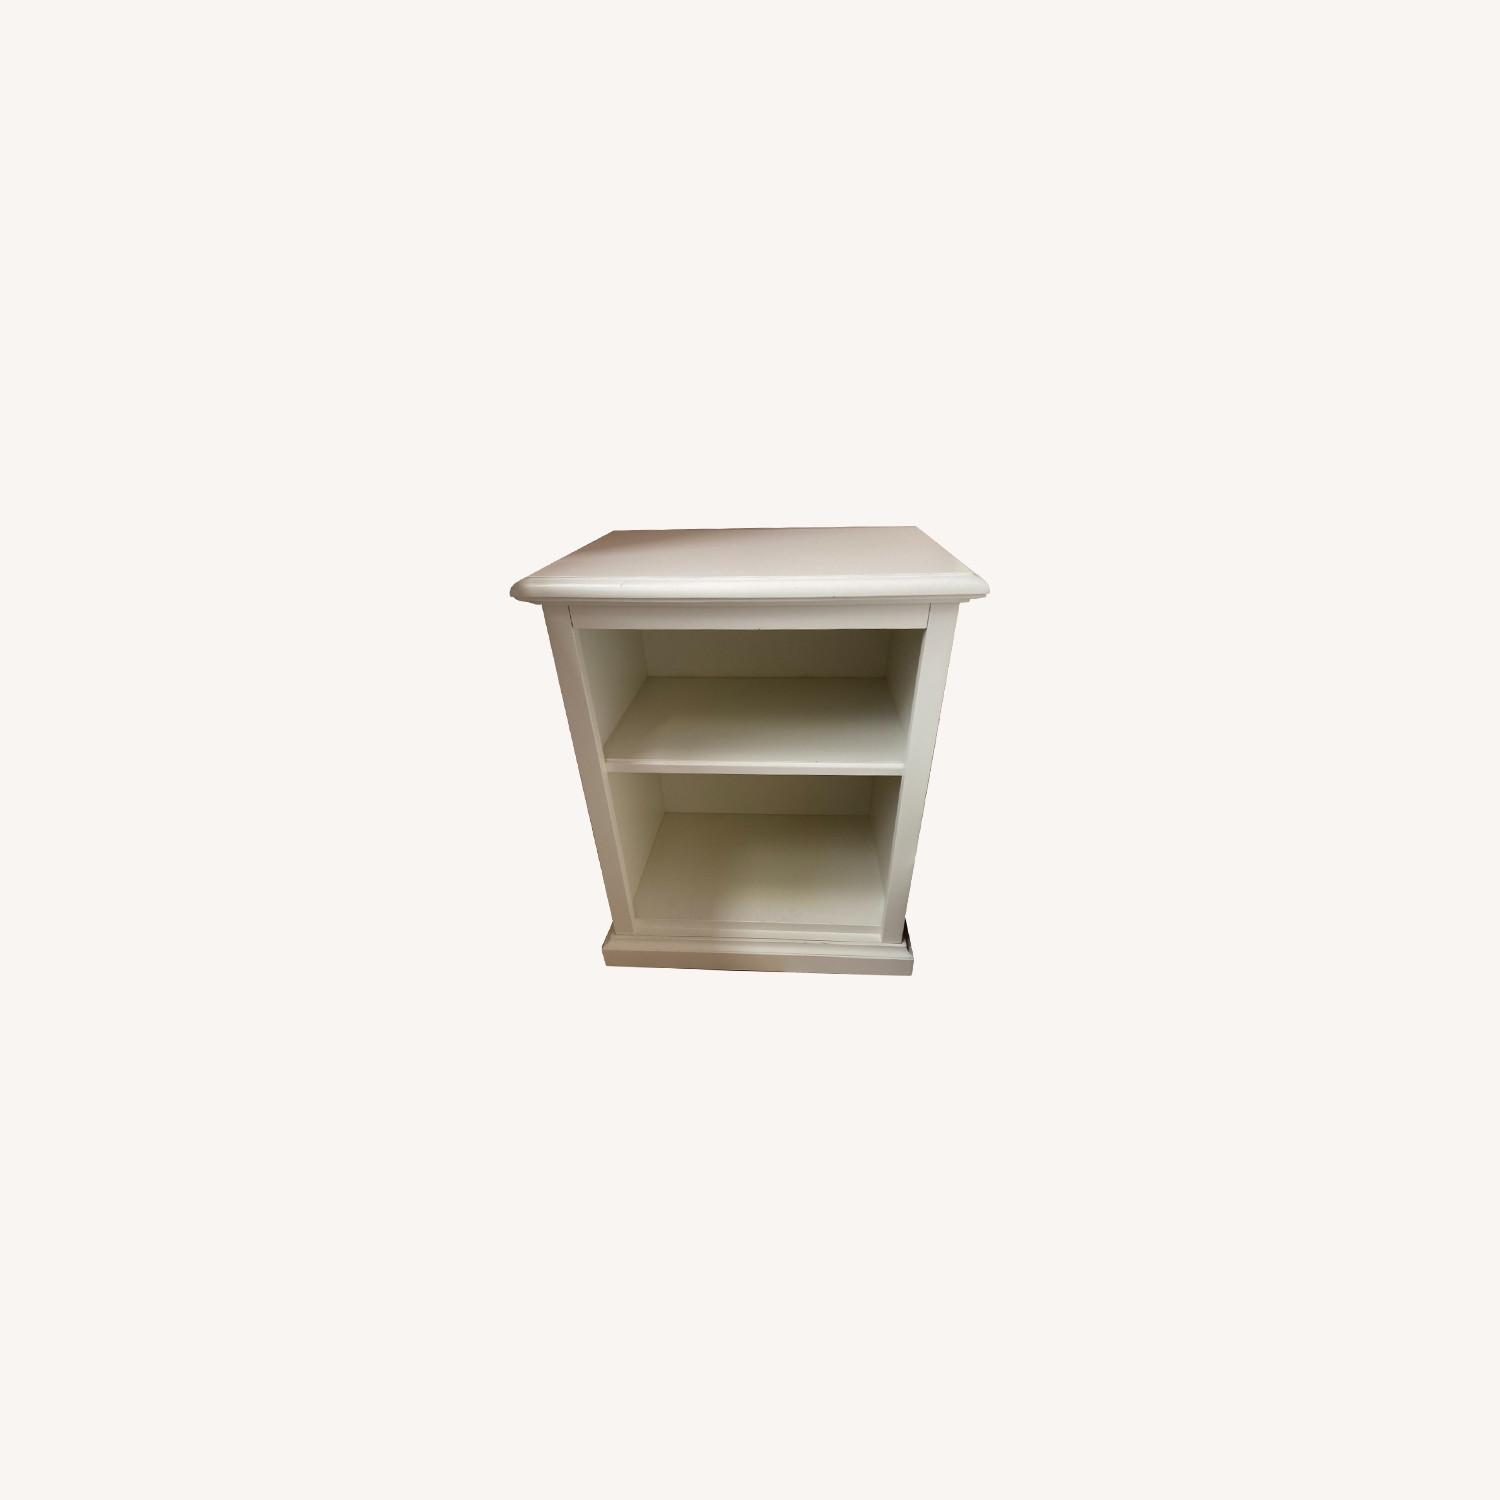 Pottery Barn Kids Catalina Nightstands - image-0